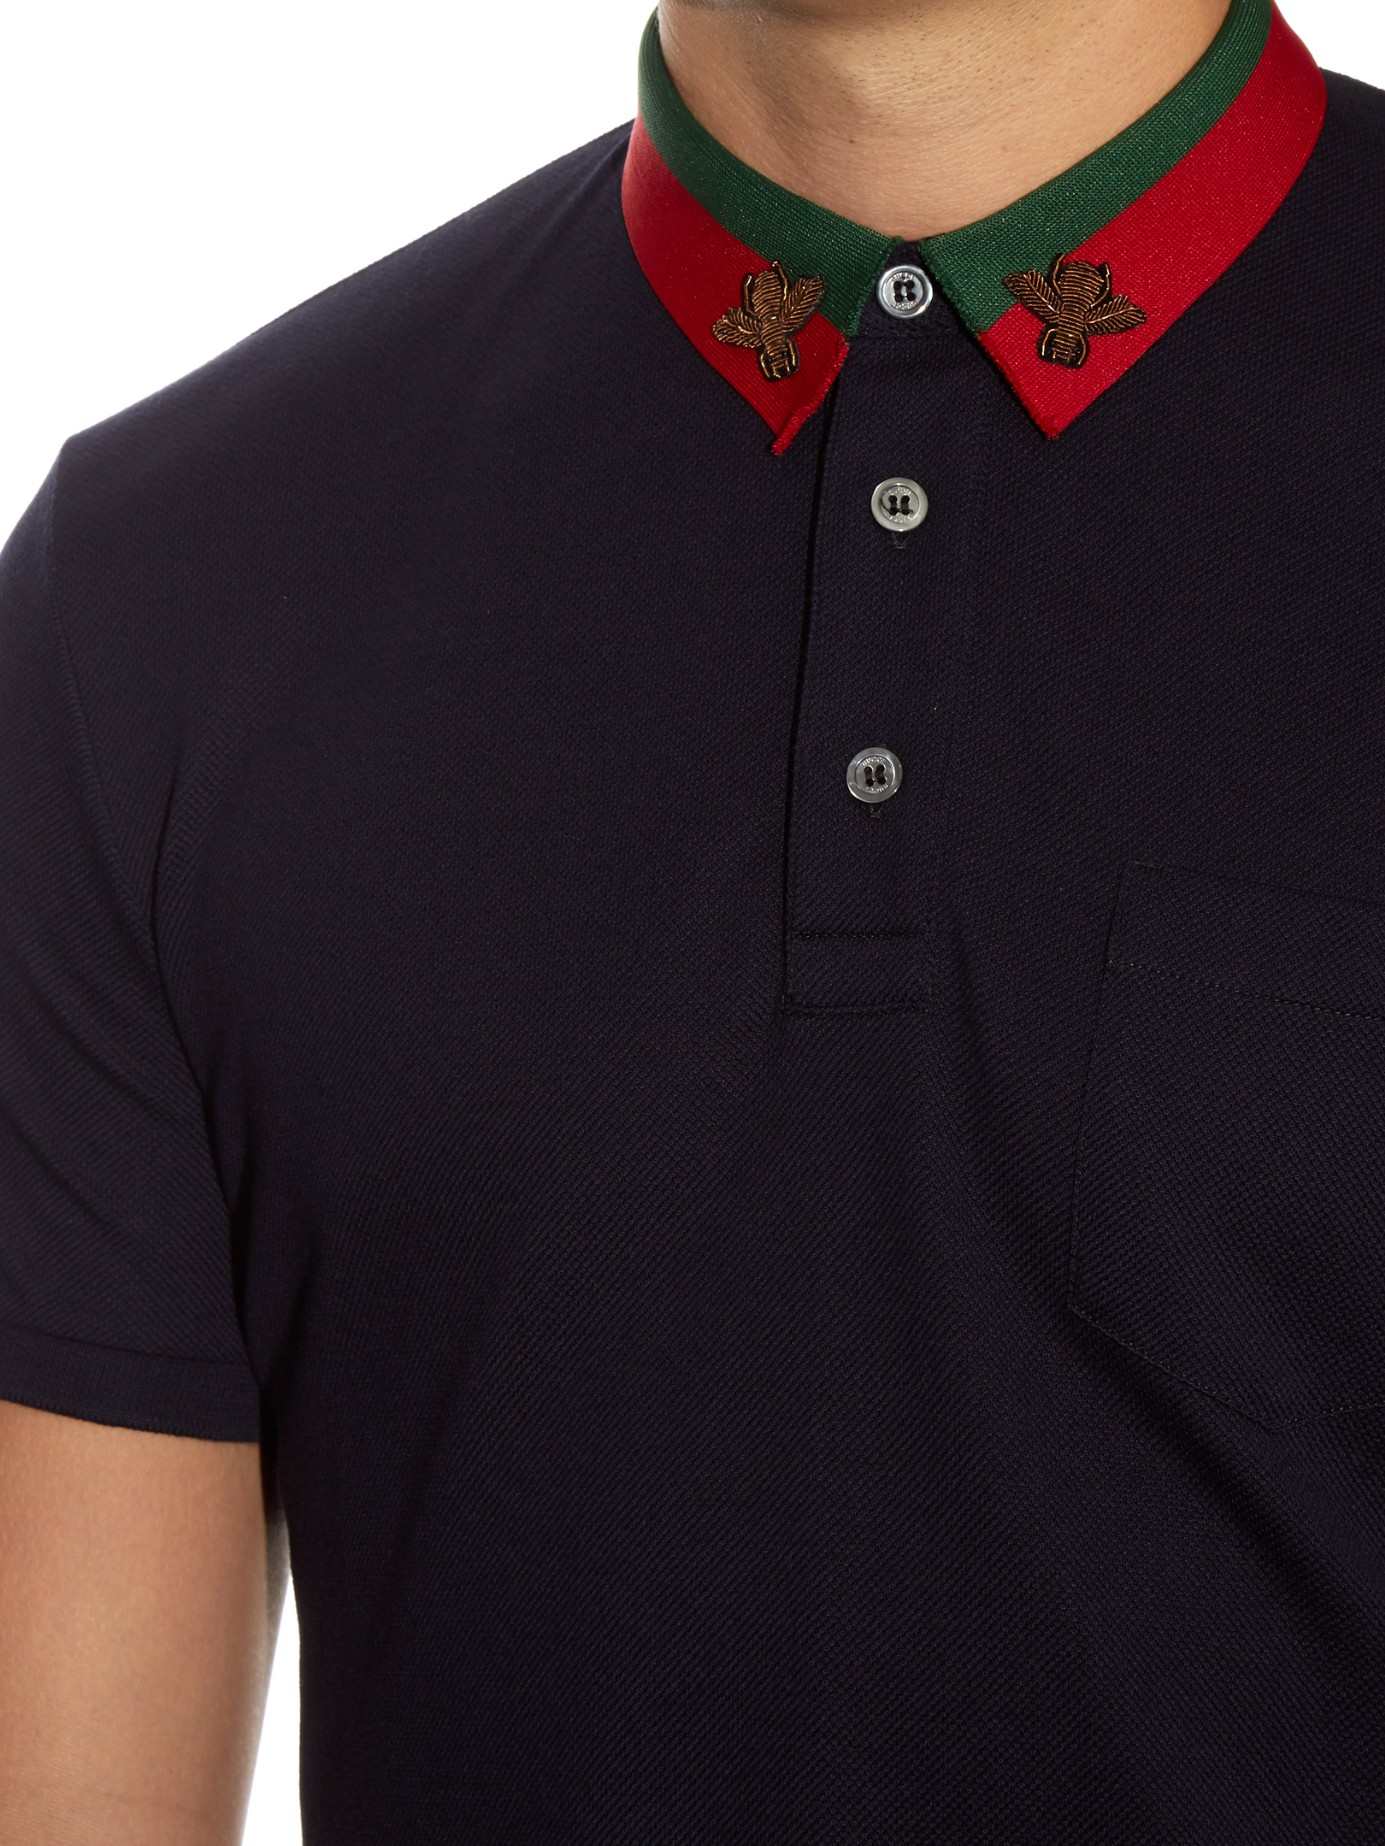 Polo Style Shirts For Men